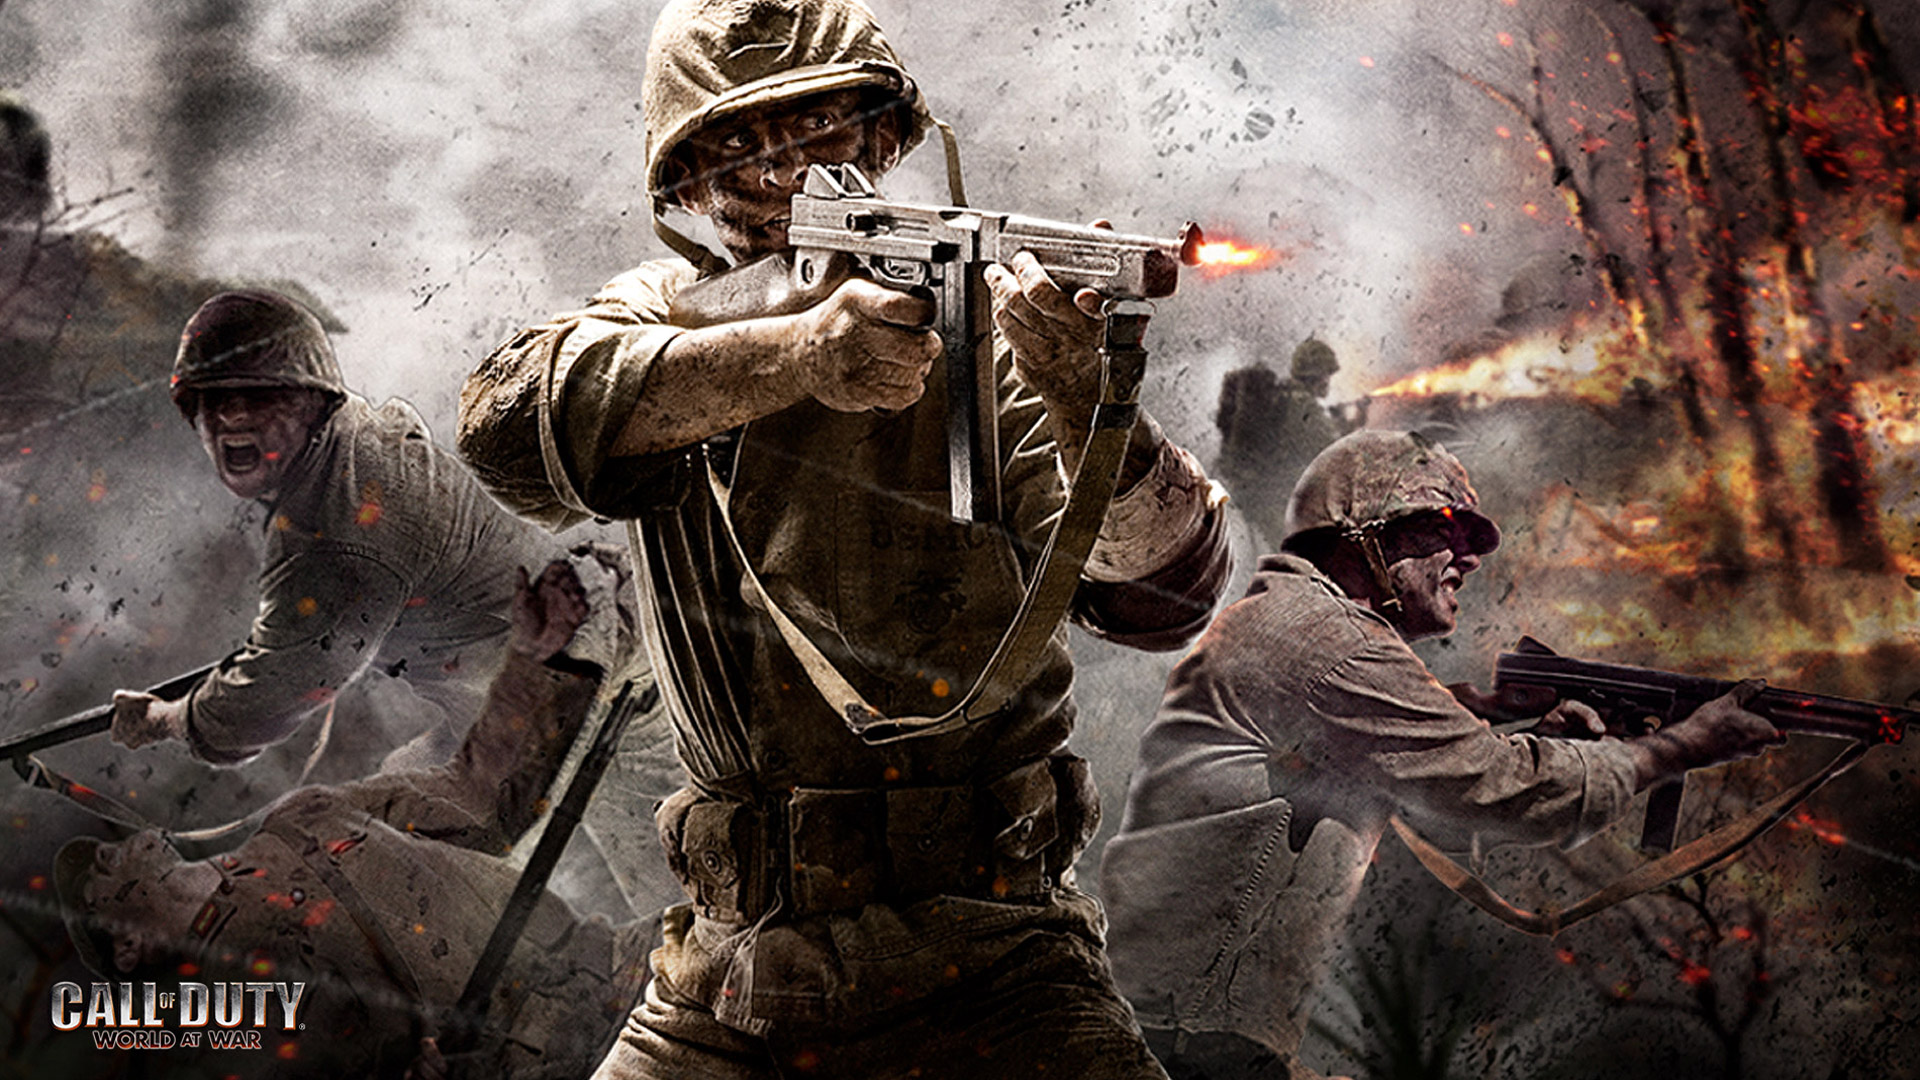 Free Call of Duty: World at War Wallpaper in 1920x1080